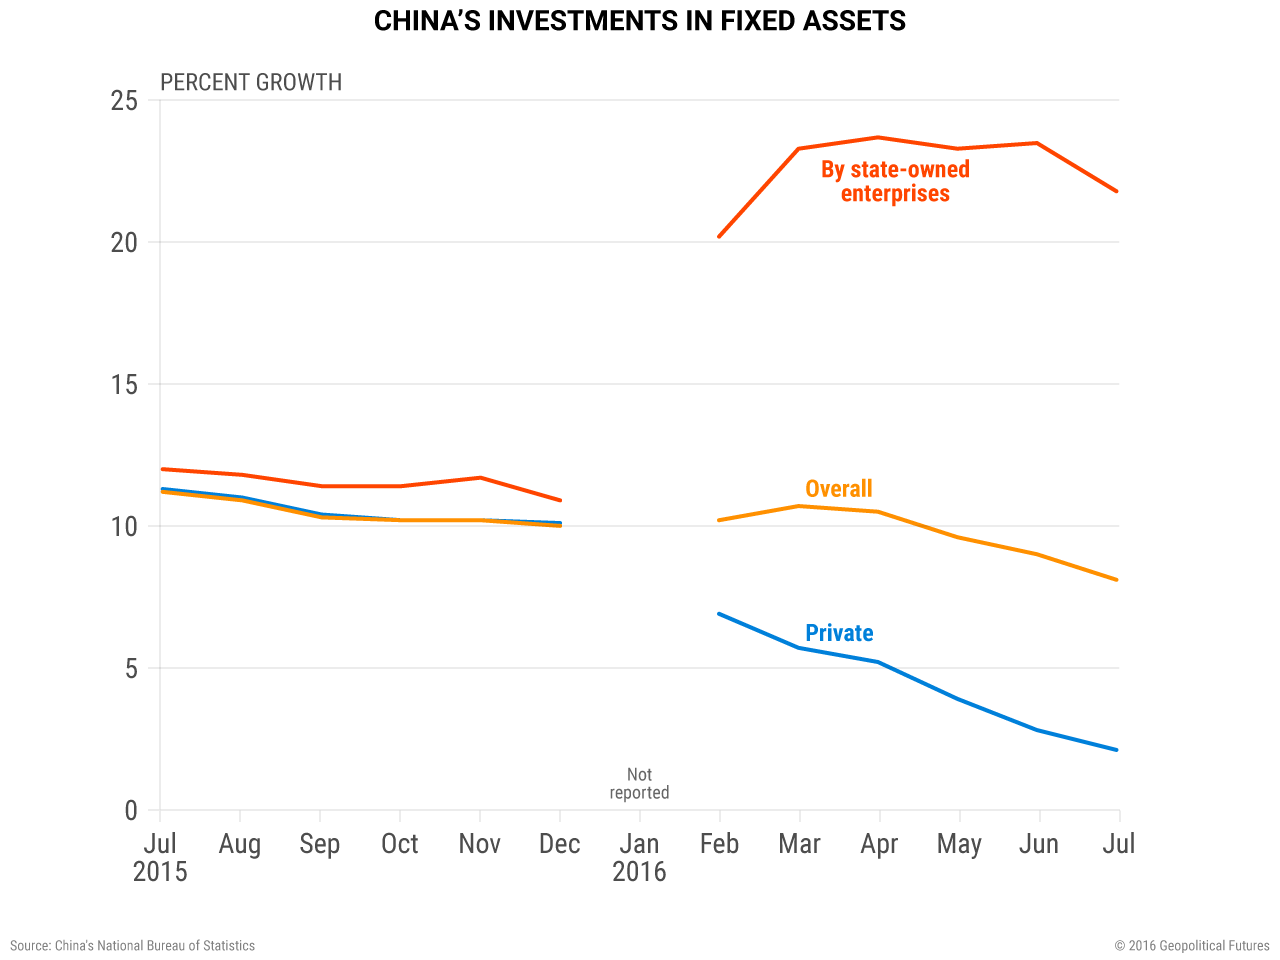 China's Investments in Fixed Assets